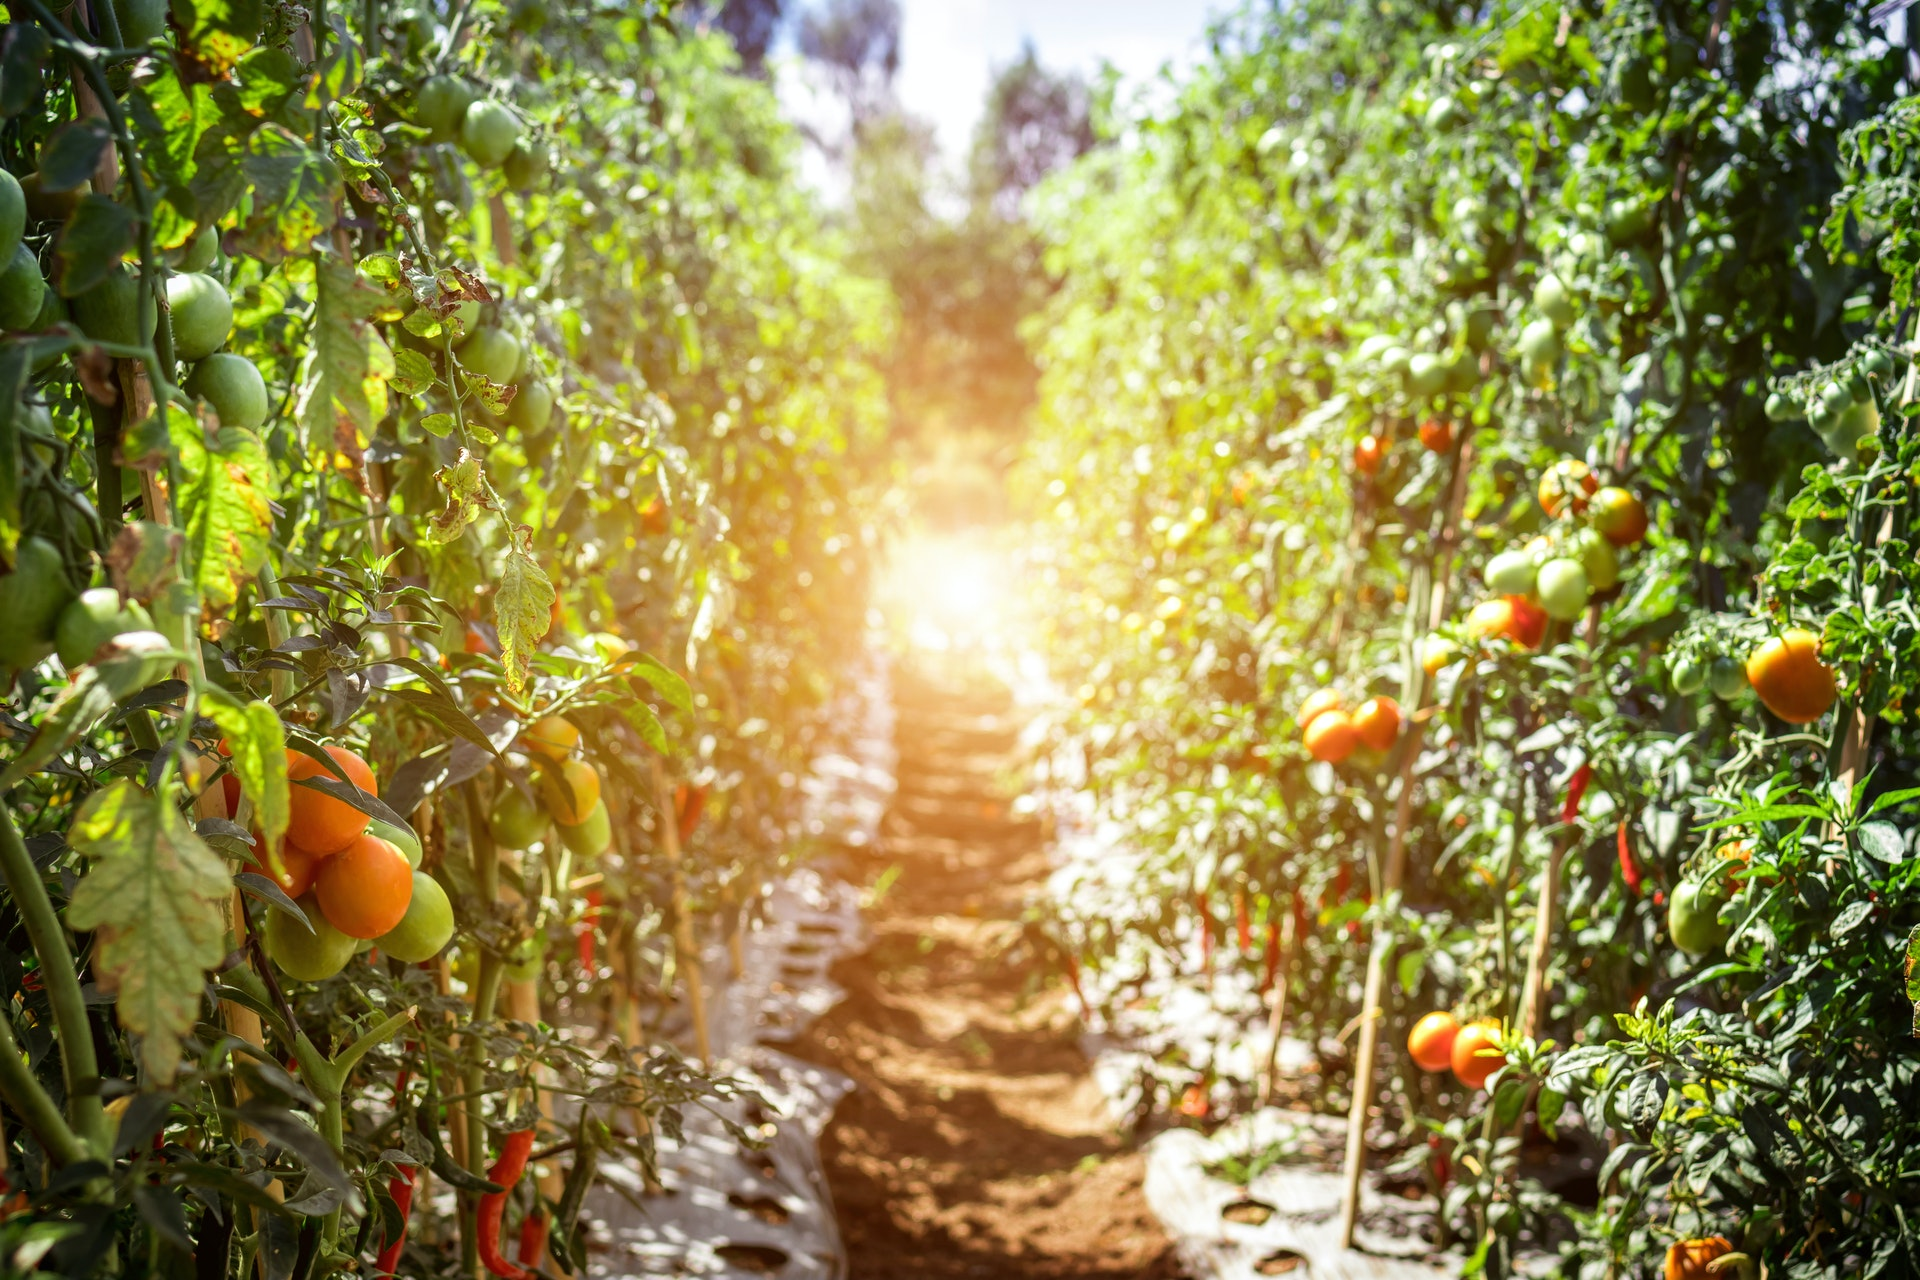 Growing Tomatoes from Harvested Seeds